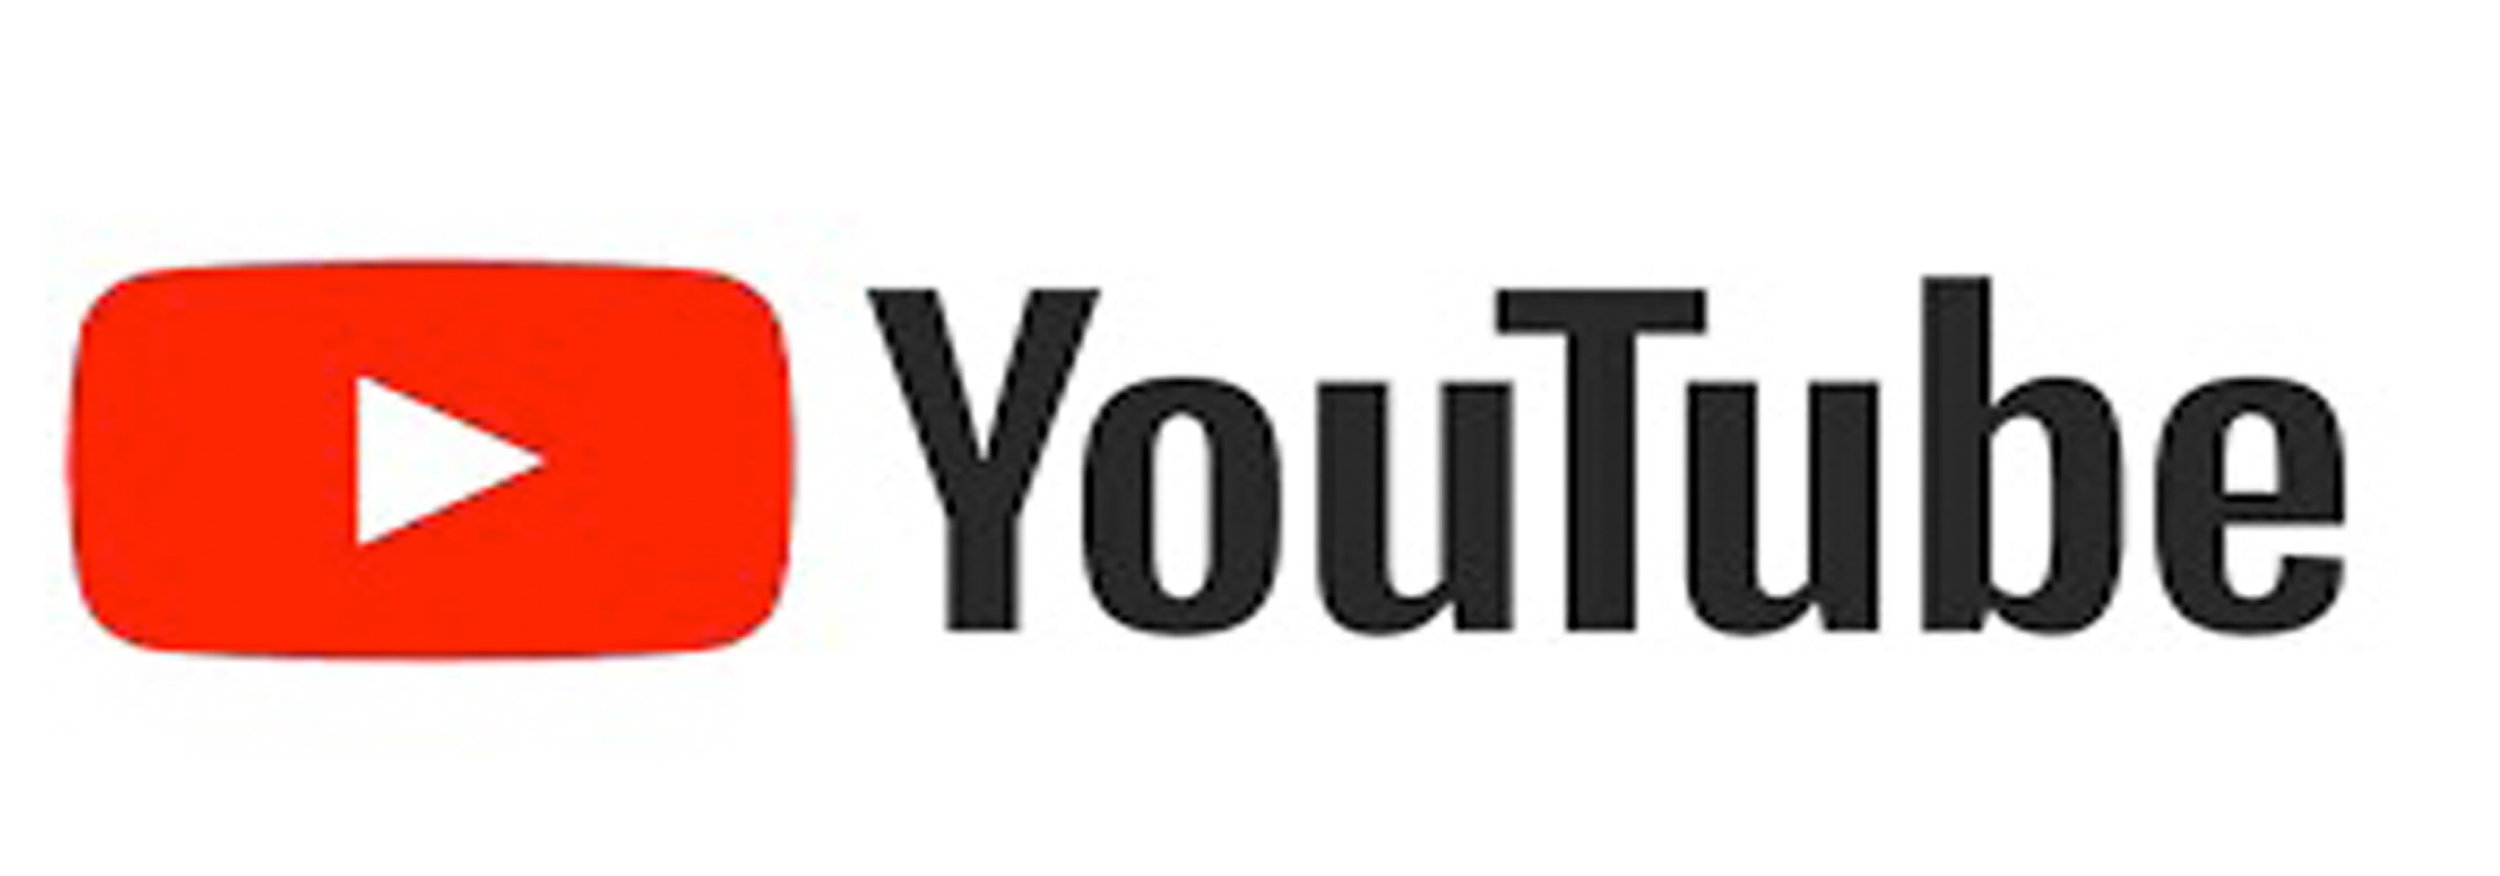 youtube button.jpg